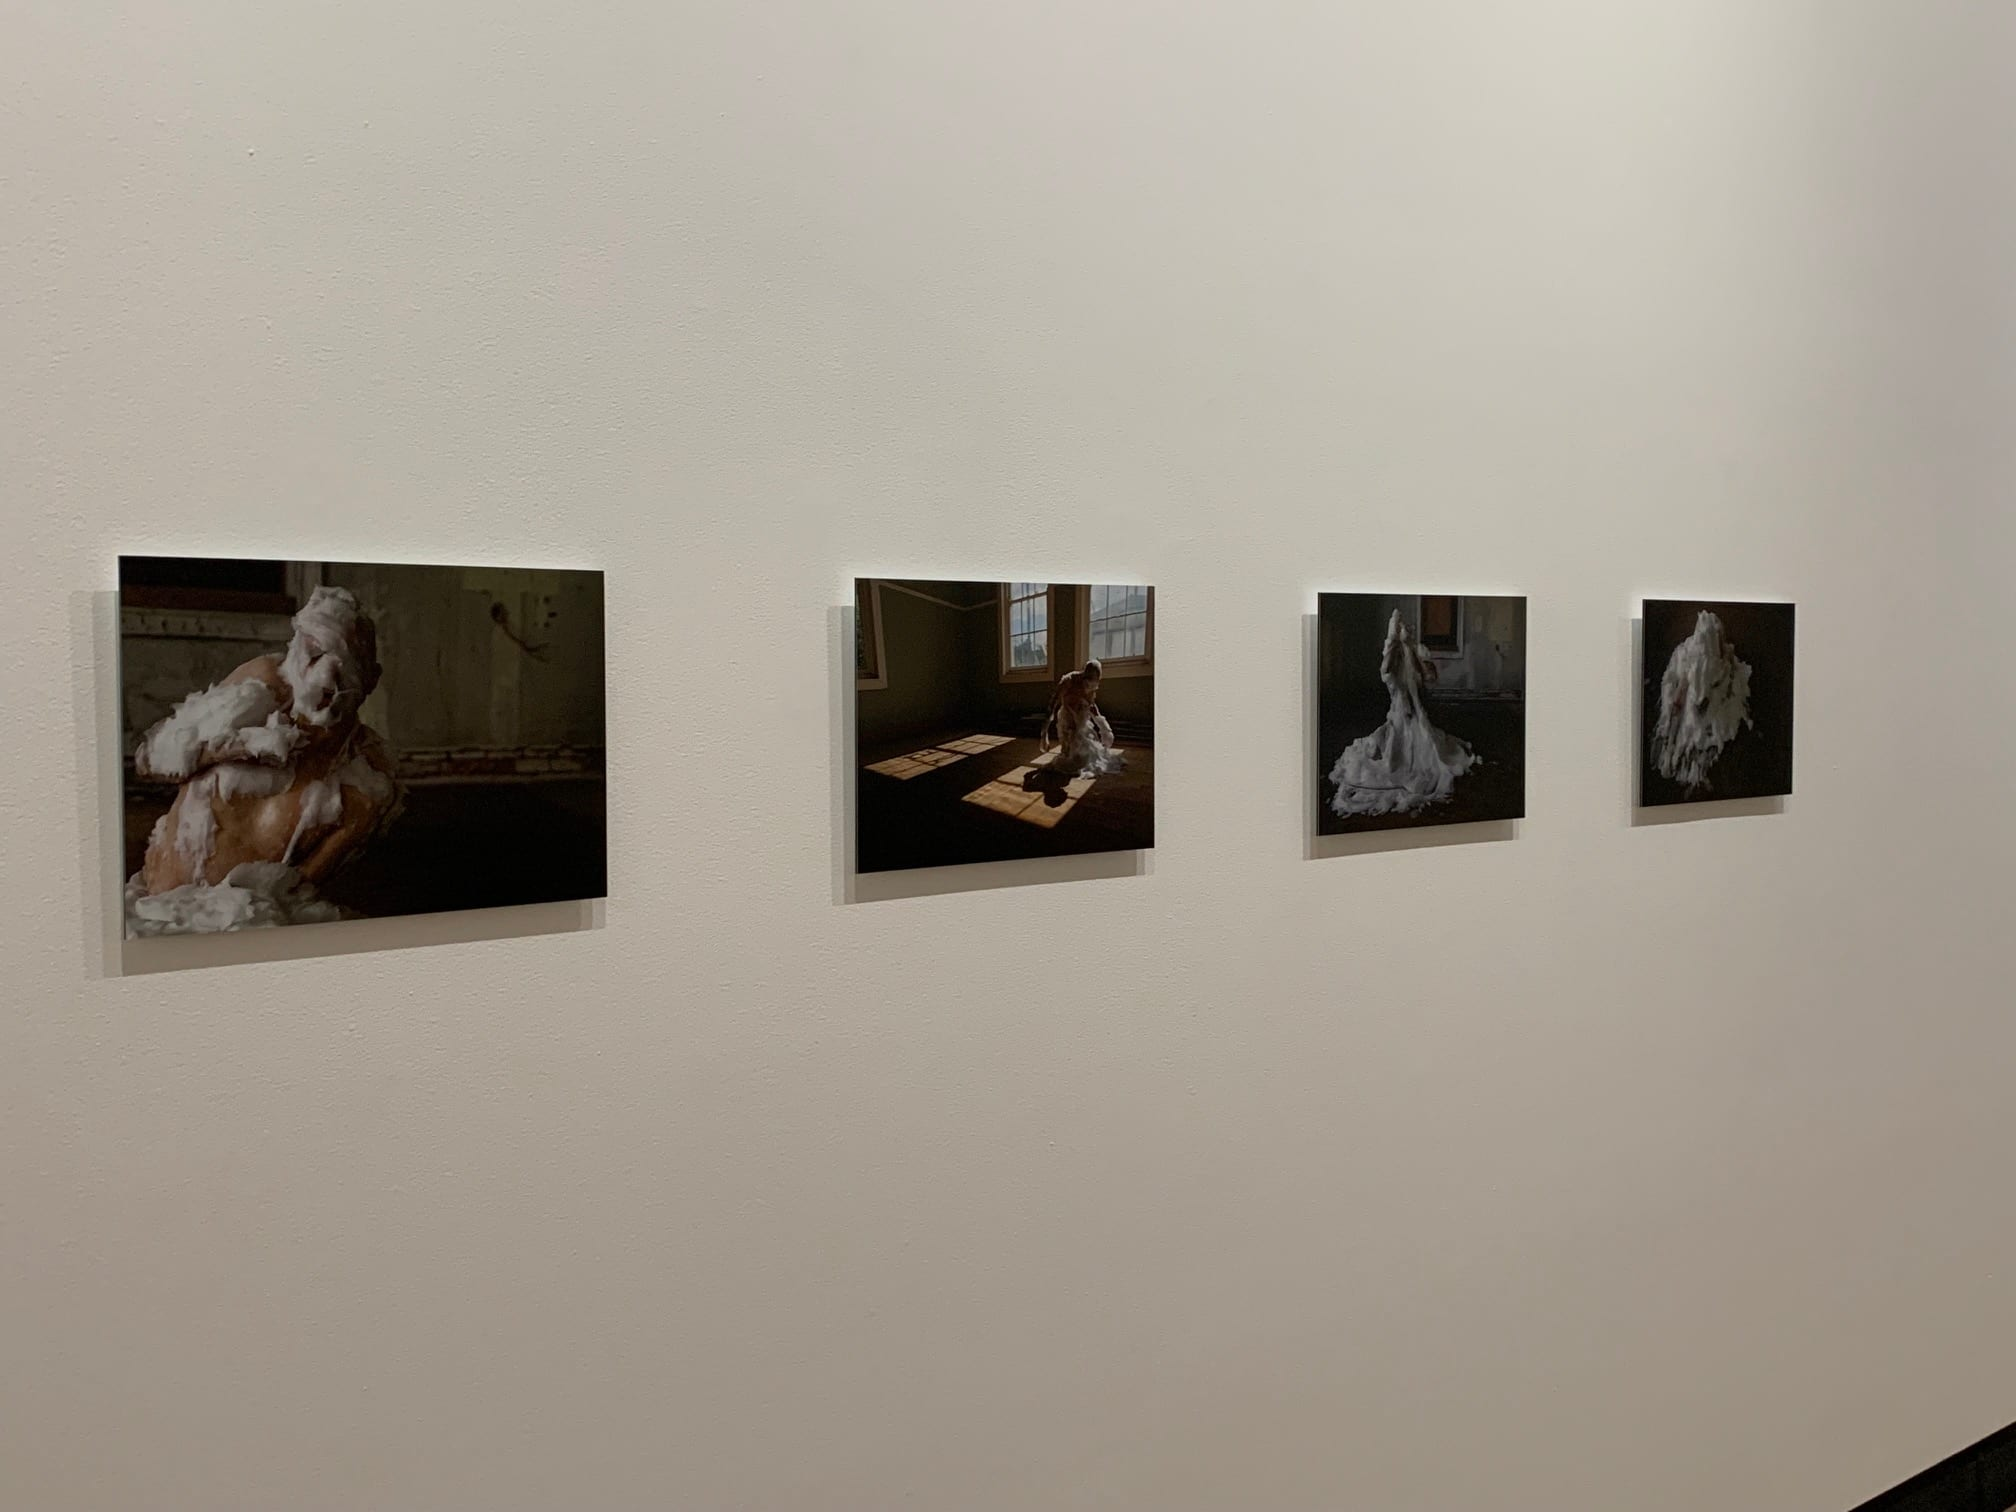 Pezaloom, Installation view of works from Dopa Kinesia series, 2014 in 'Small Town Fetish' exhibition 2020